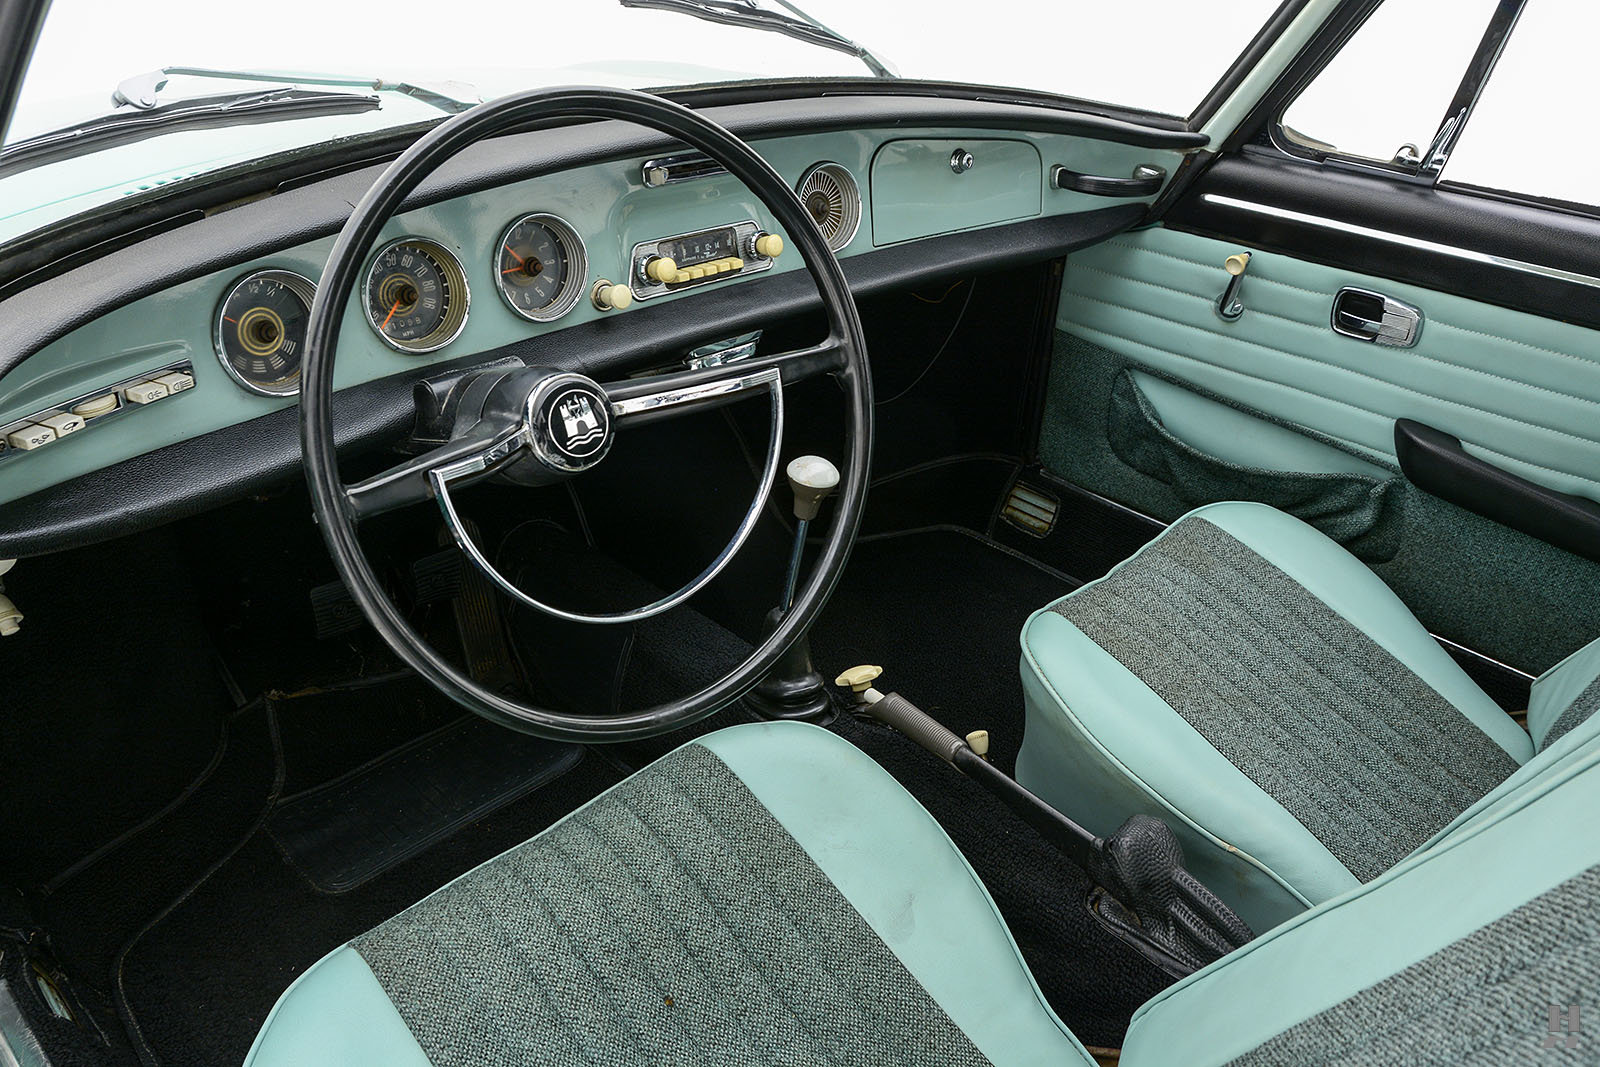 1963 Volkswagen Type 34 Karmann Ghia Coupe For Sale (picture 4 of 6)